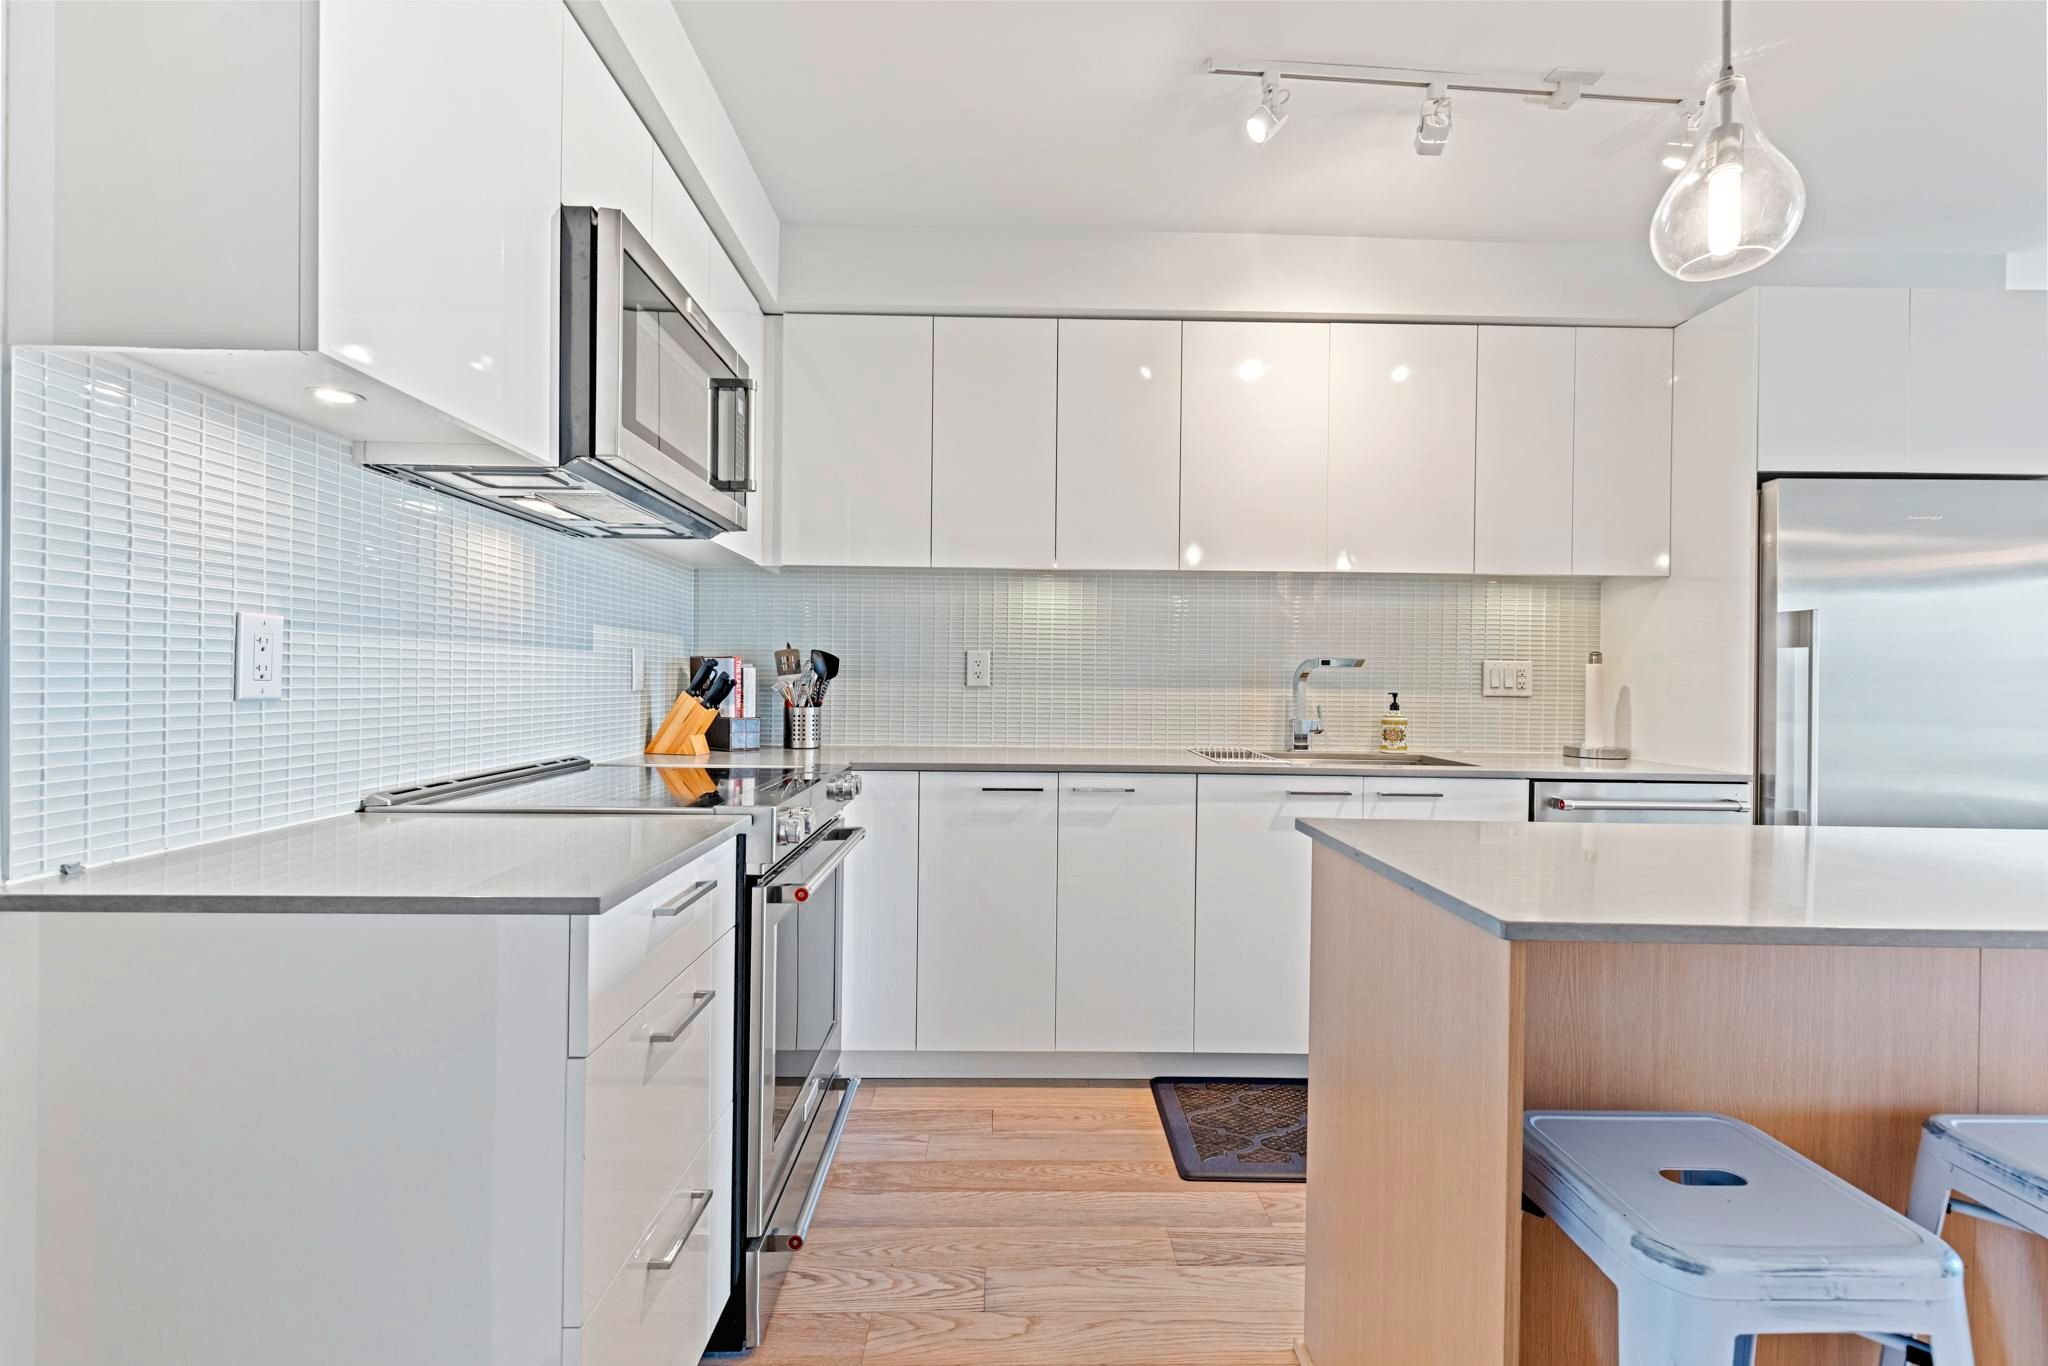 """Main Photo: 406 233 KINGSWAY Avenue in Vancouver: Mount Pleasant VE Condo for sale in """"VYA"""" (Vancouver East)  : MLS®# R2625191"""